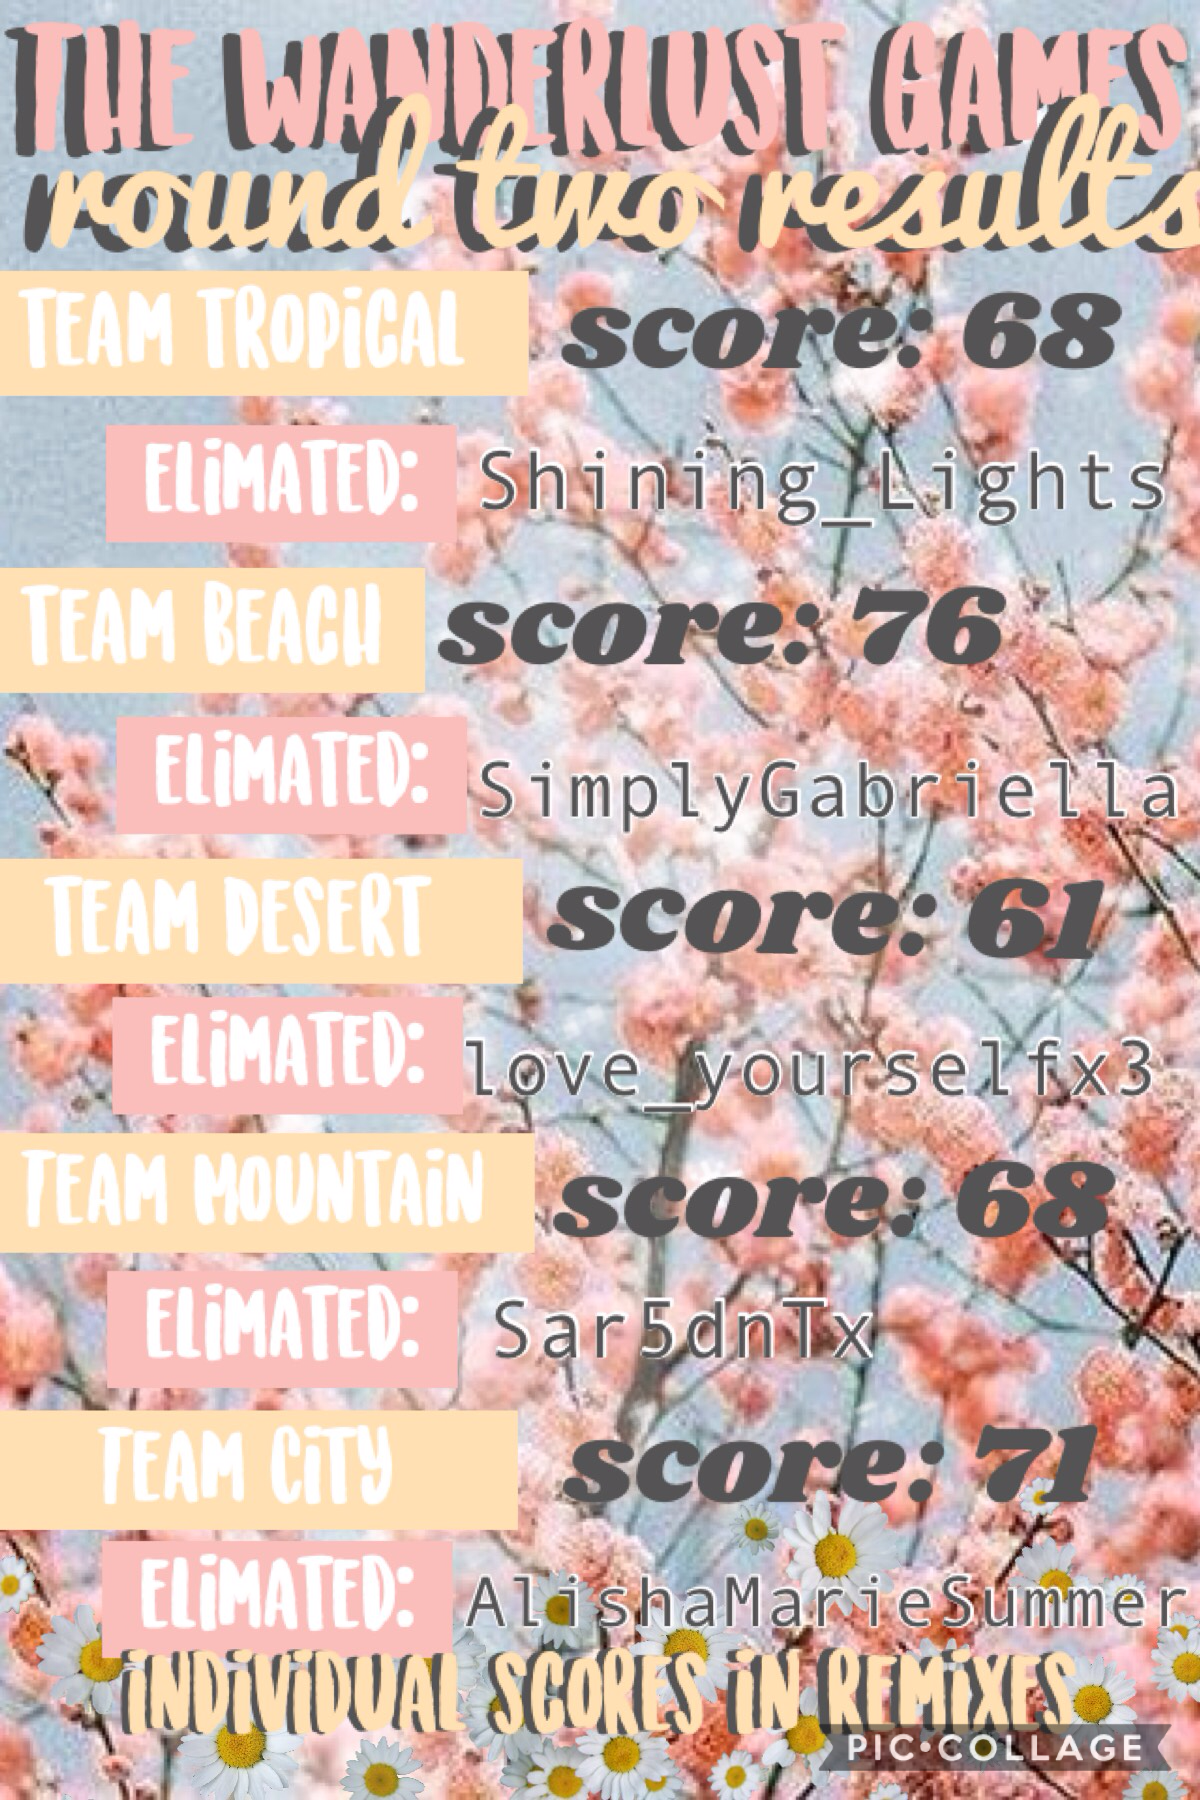 ROUND 2 RESULTS! Also please pick your team icons soon. Sorry for this bad layout.